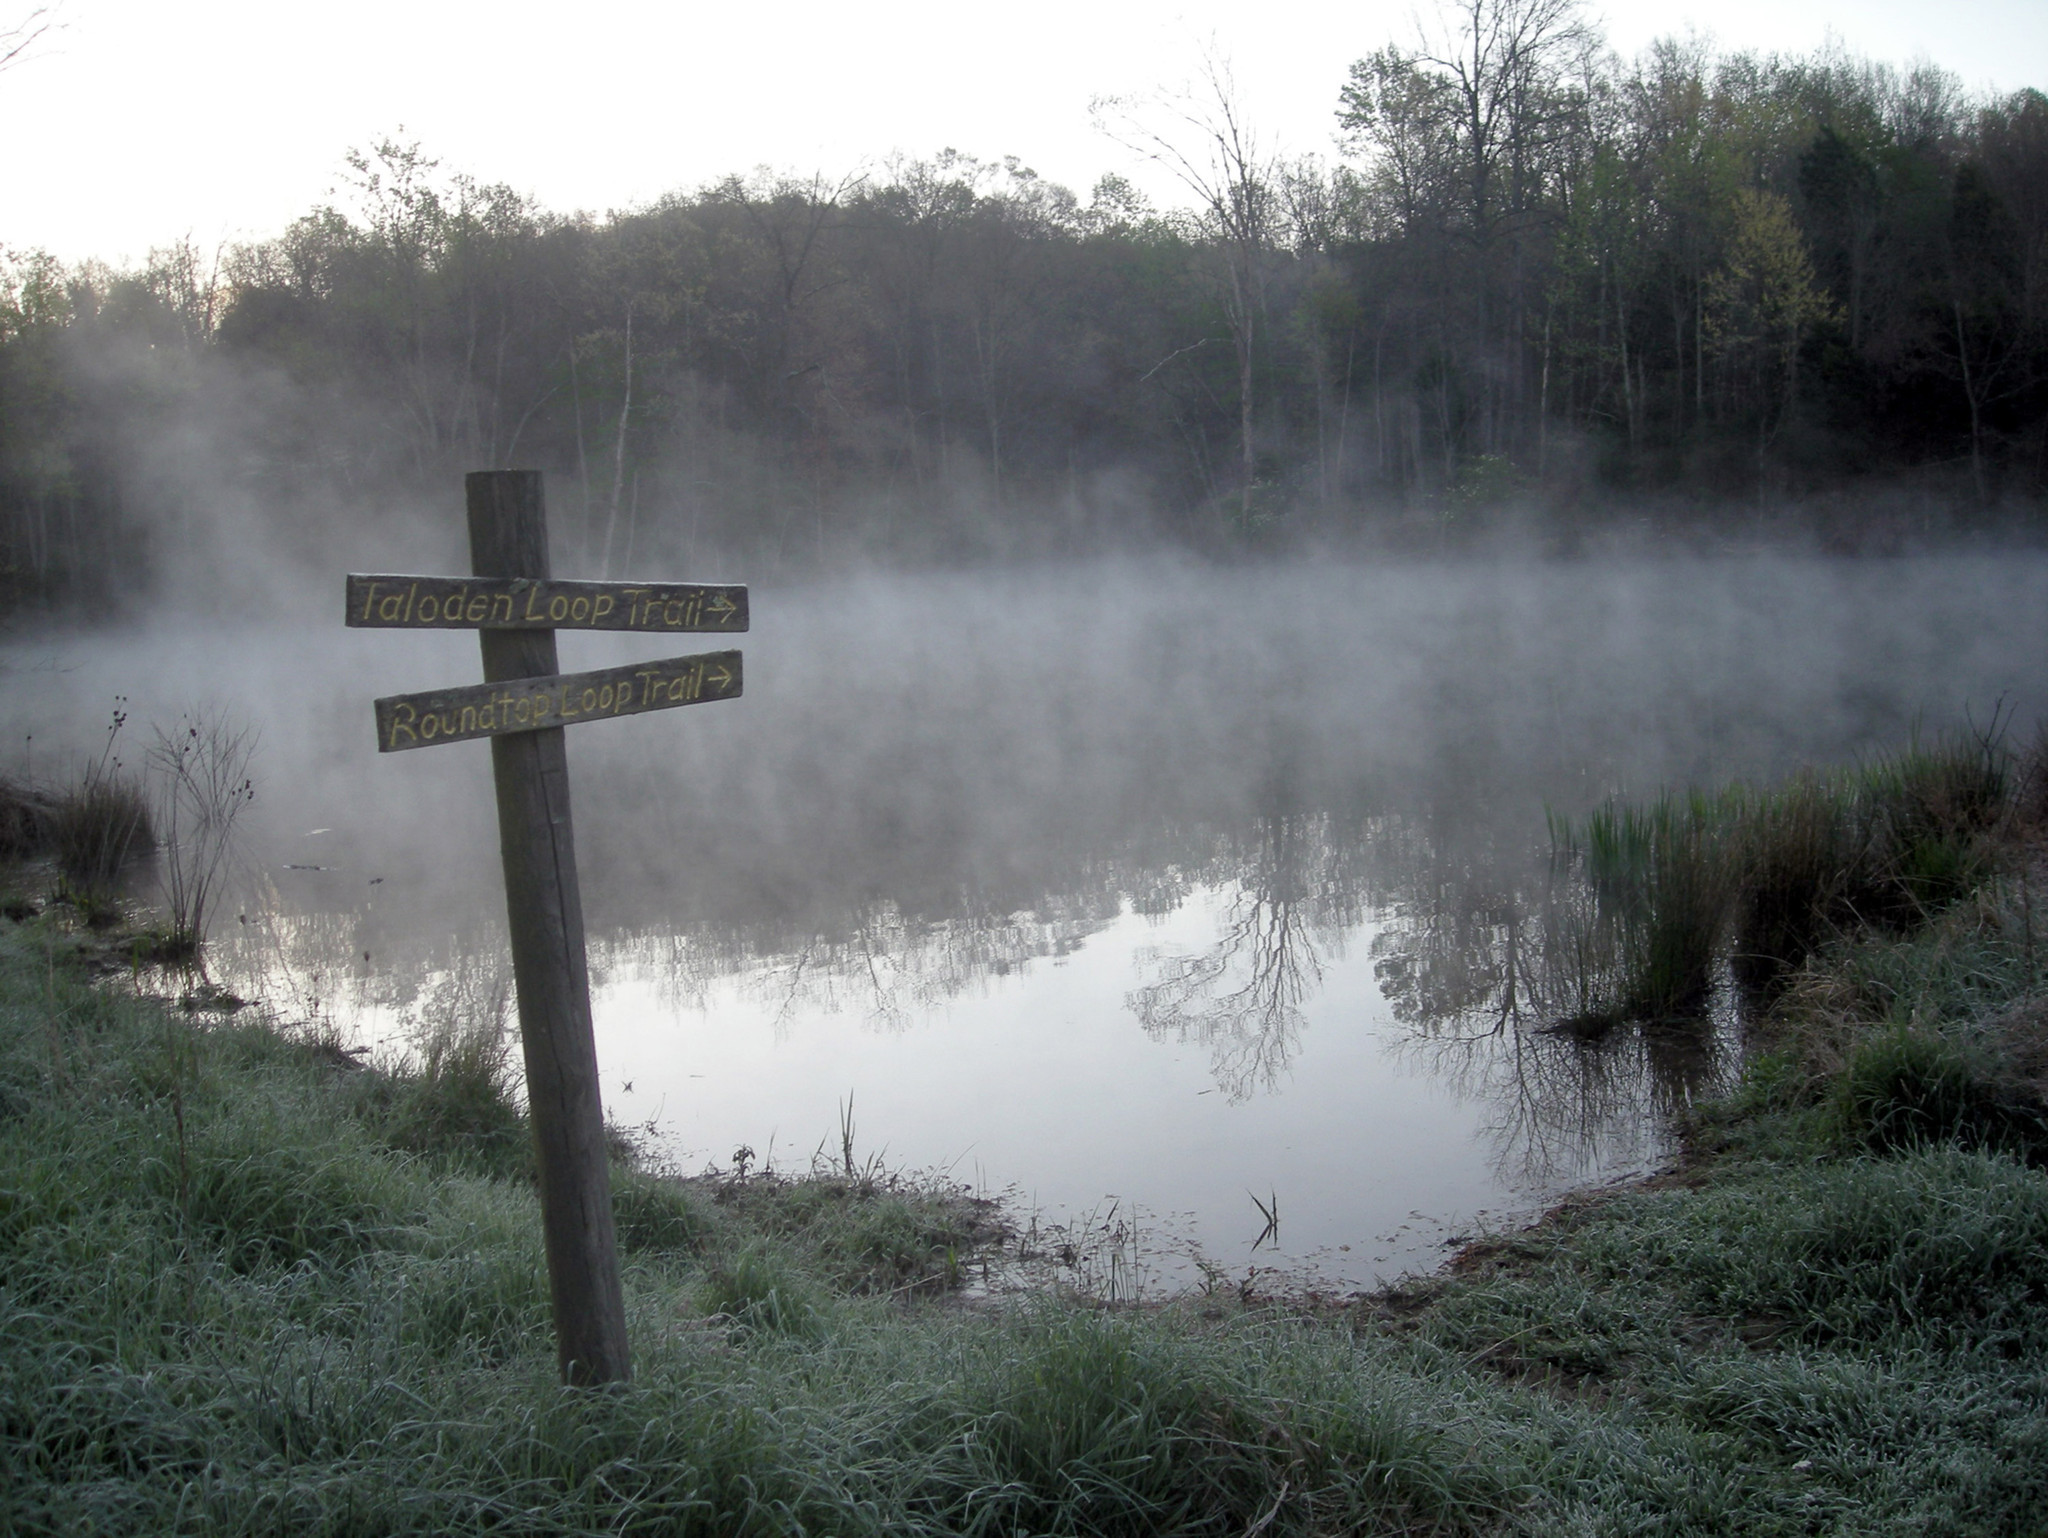 Morning fog on Taloden Pond on the heavily wooded Taloden Woods Trail at Ohio's Highlands Nature Sanctuary.